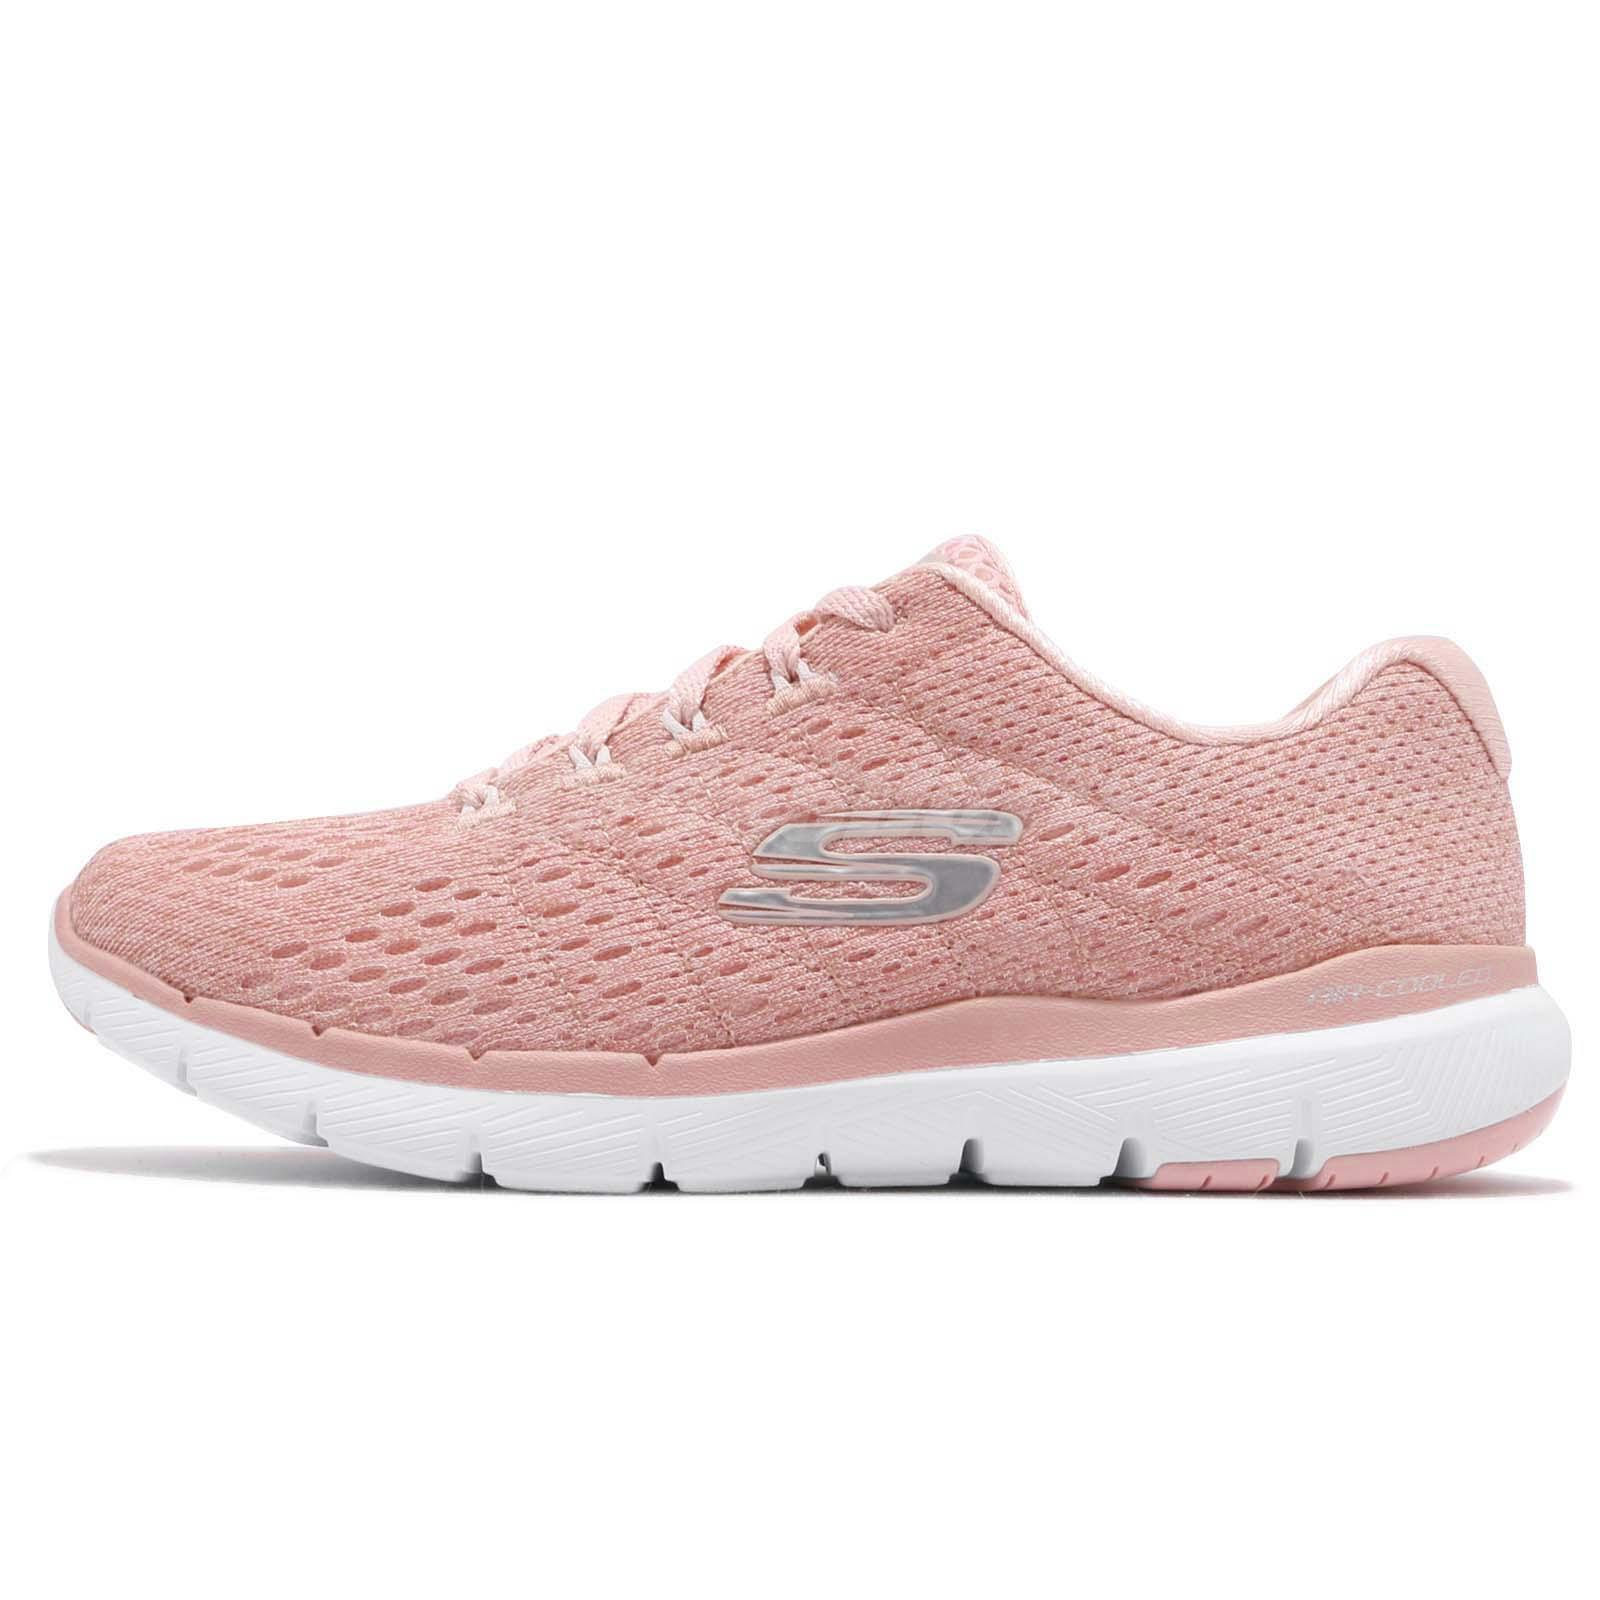 Skechers Appeal Fitness 3 Flex 0 Satellites Chaussures Femme QCBWdxero